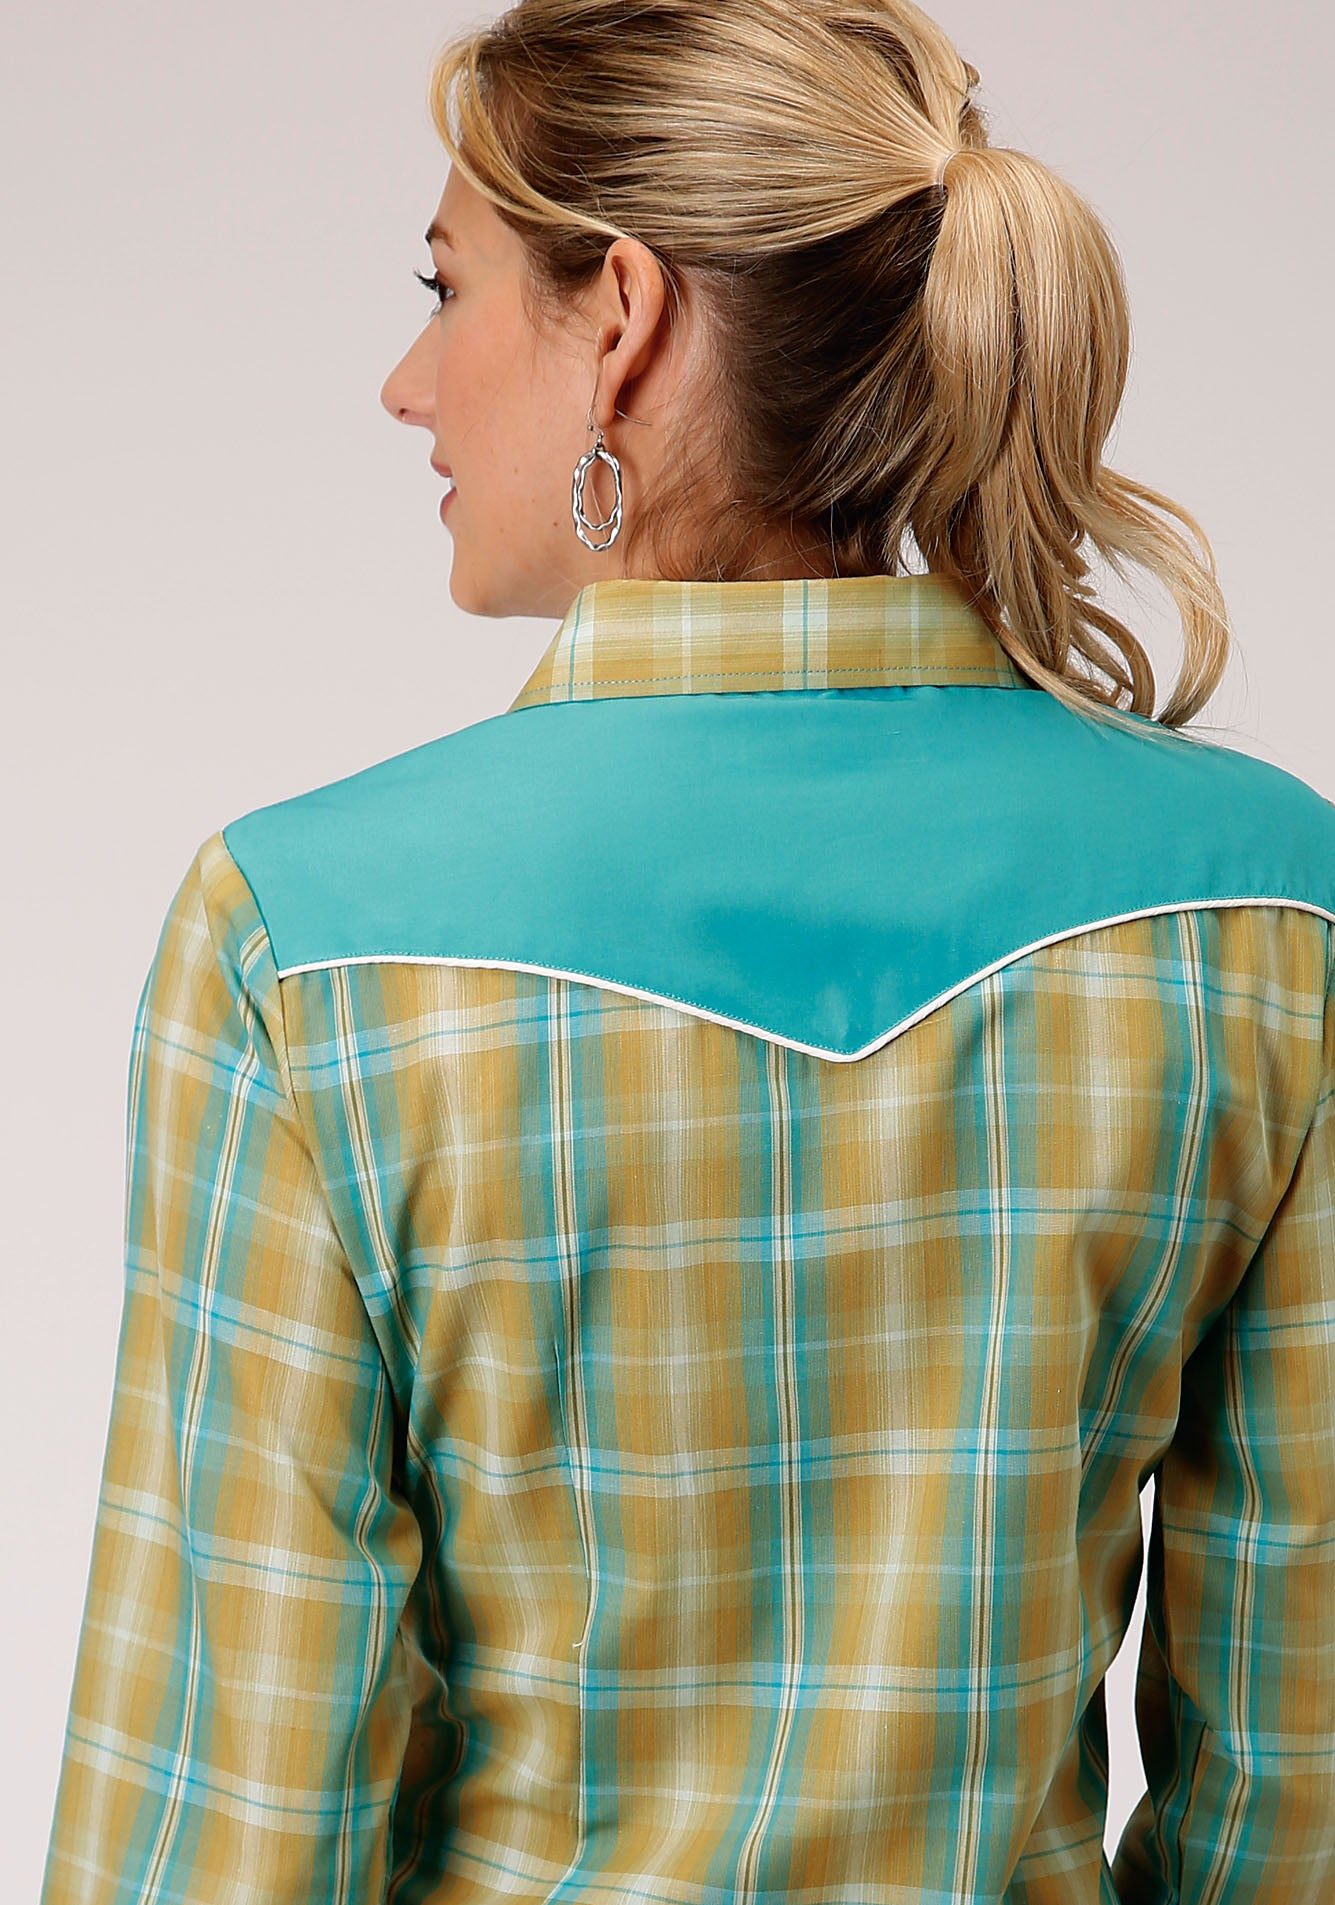 ROPER WOMENS GREEN 00044 CELERY & TURQUOISE PLAID KARMAN SPECIAL STYLES LONG SLEEVE